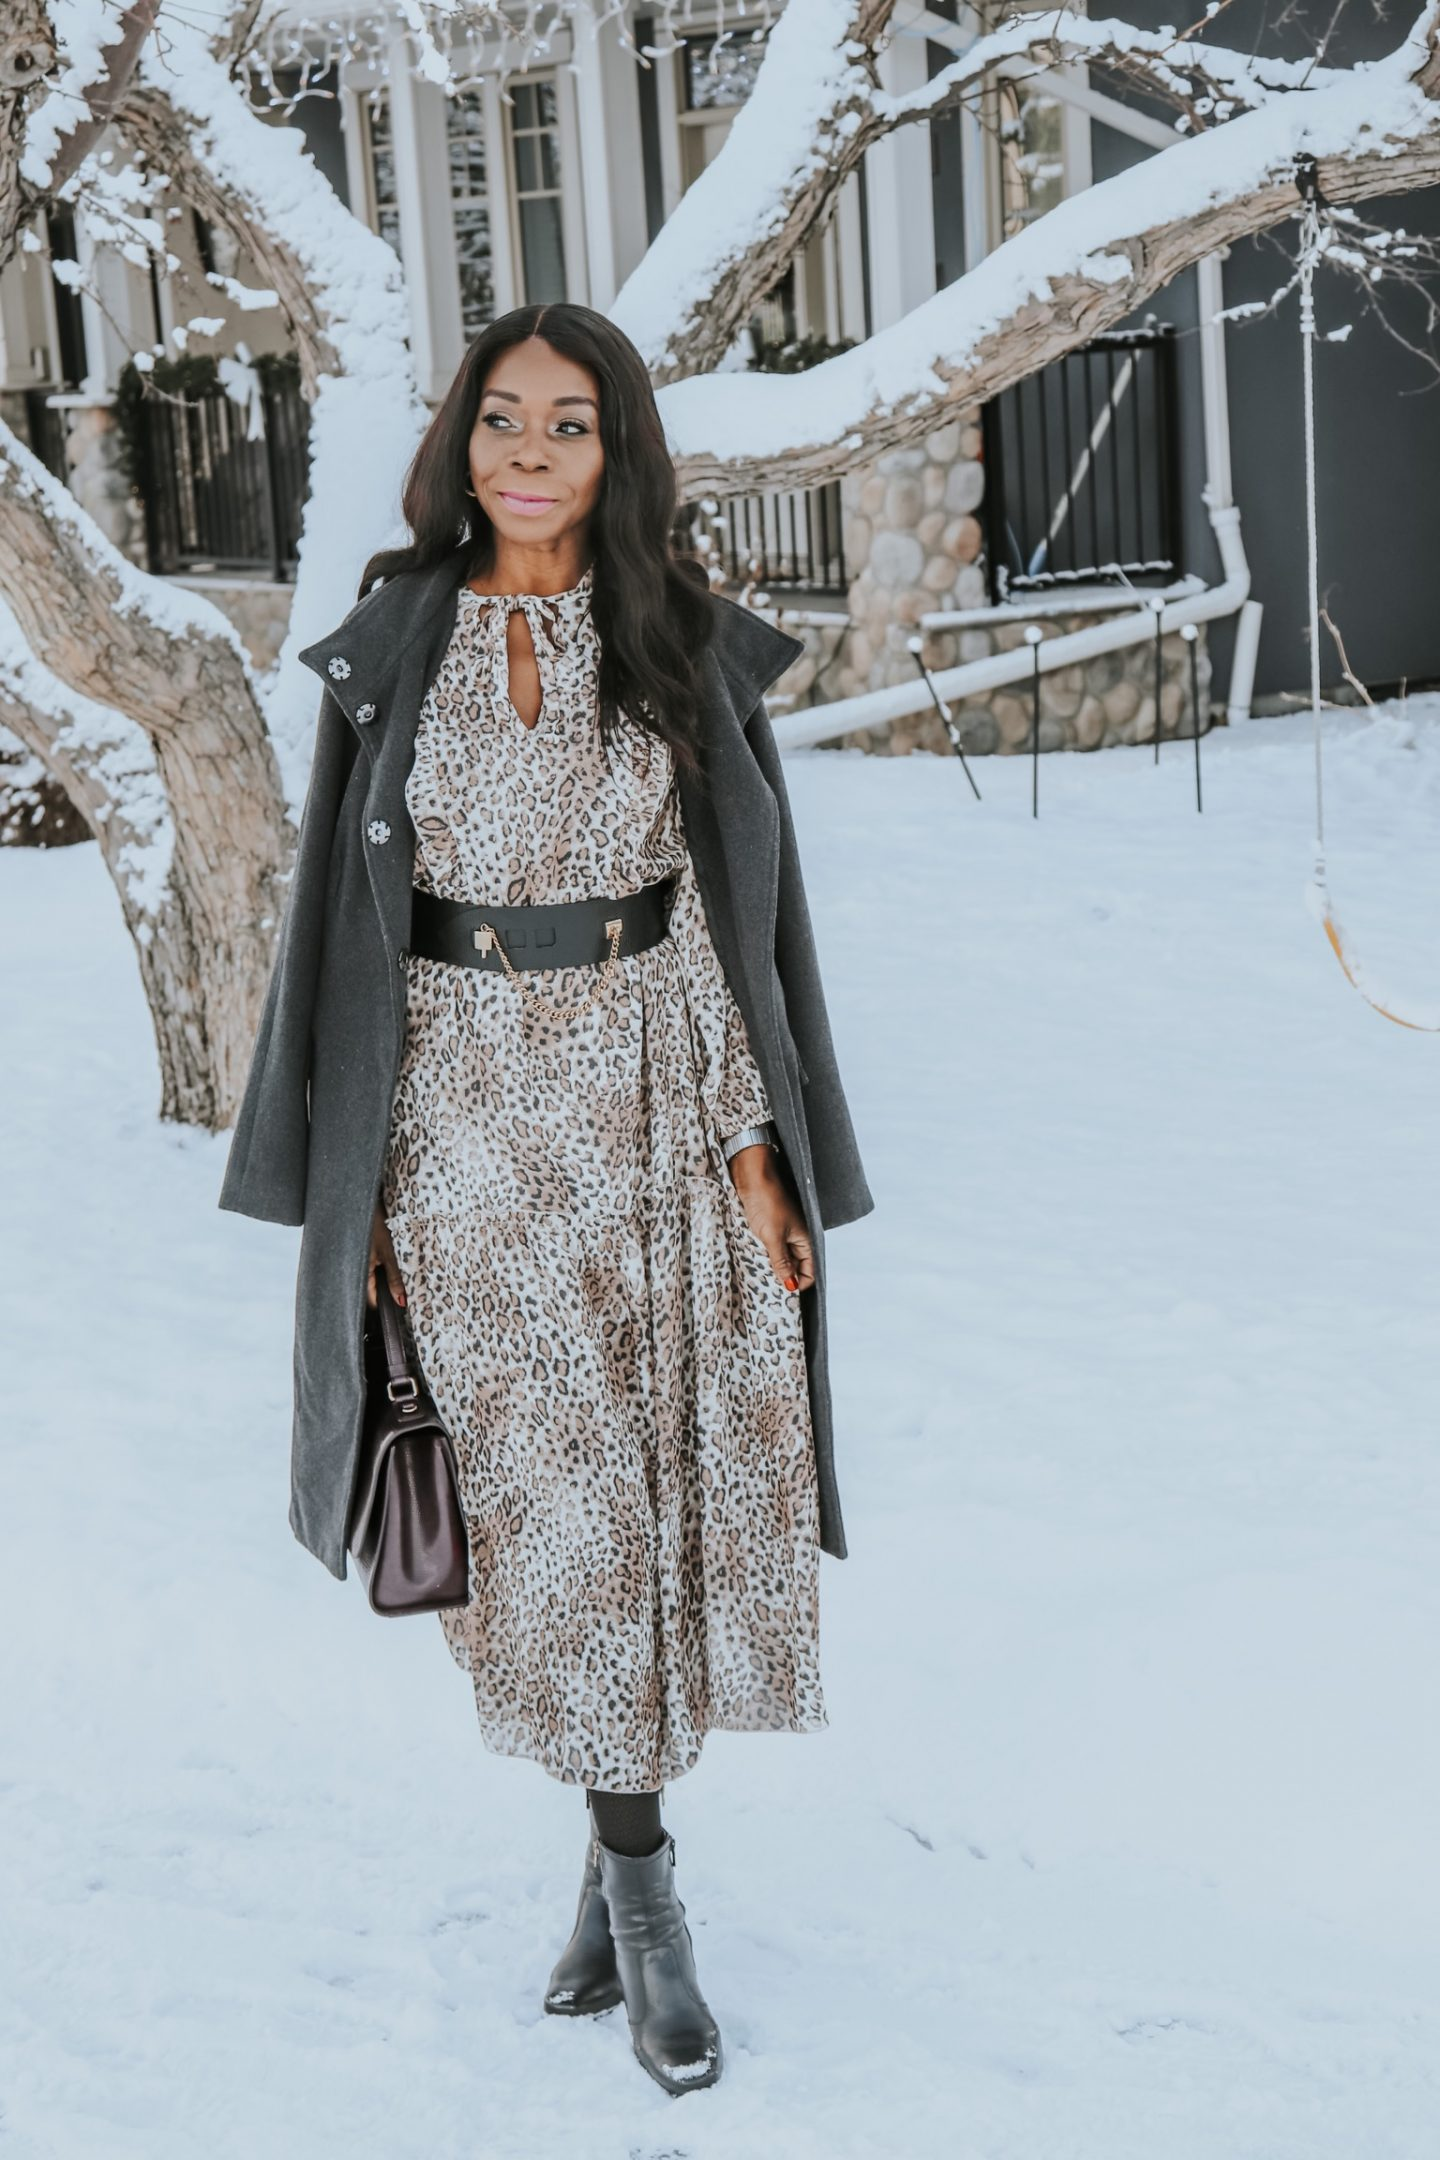 Wearing Leopard Print For The New Year 2020 // Winter Style